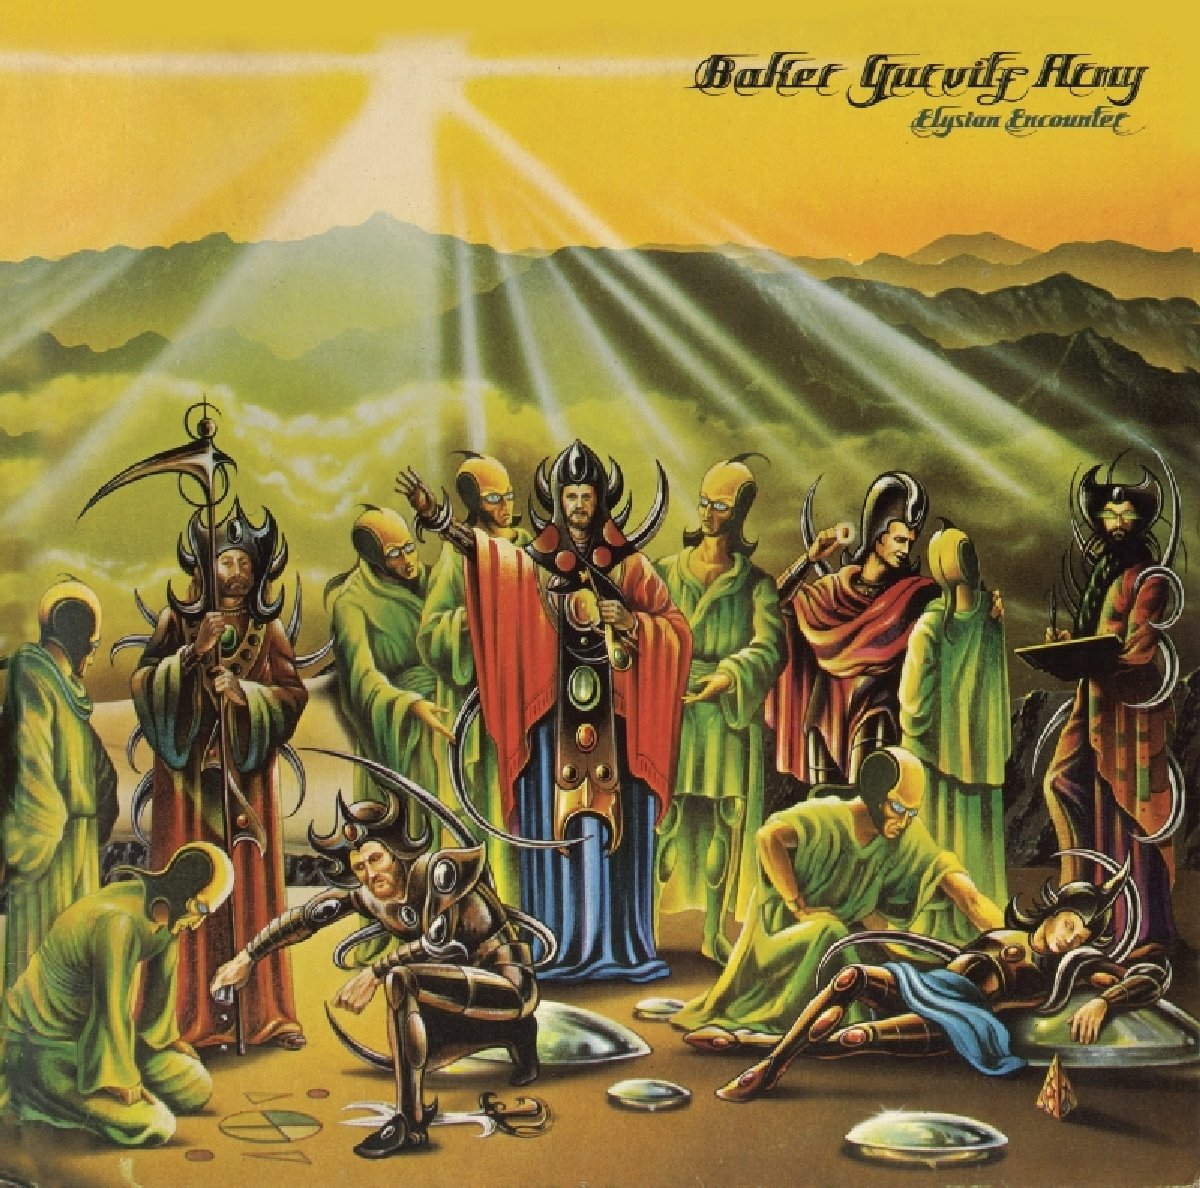 Baker Gurvitz Army Army. Elysian Encounter